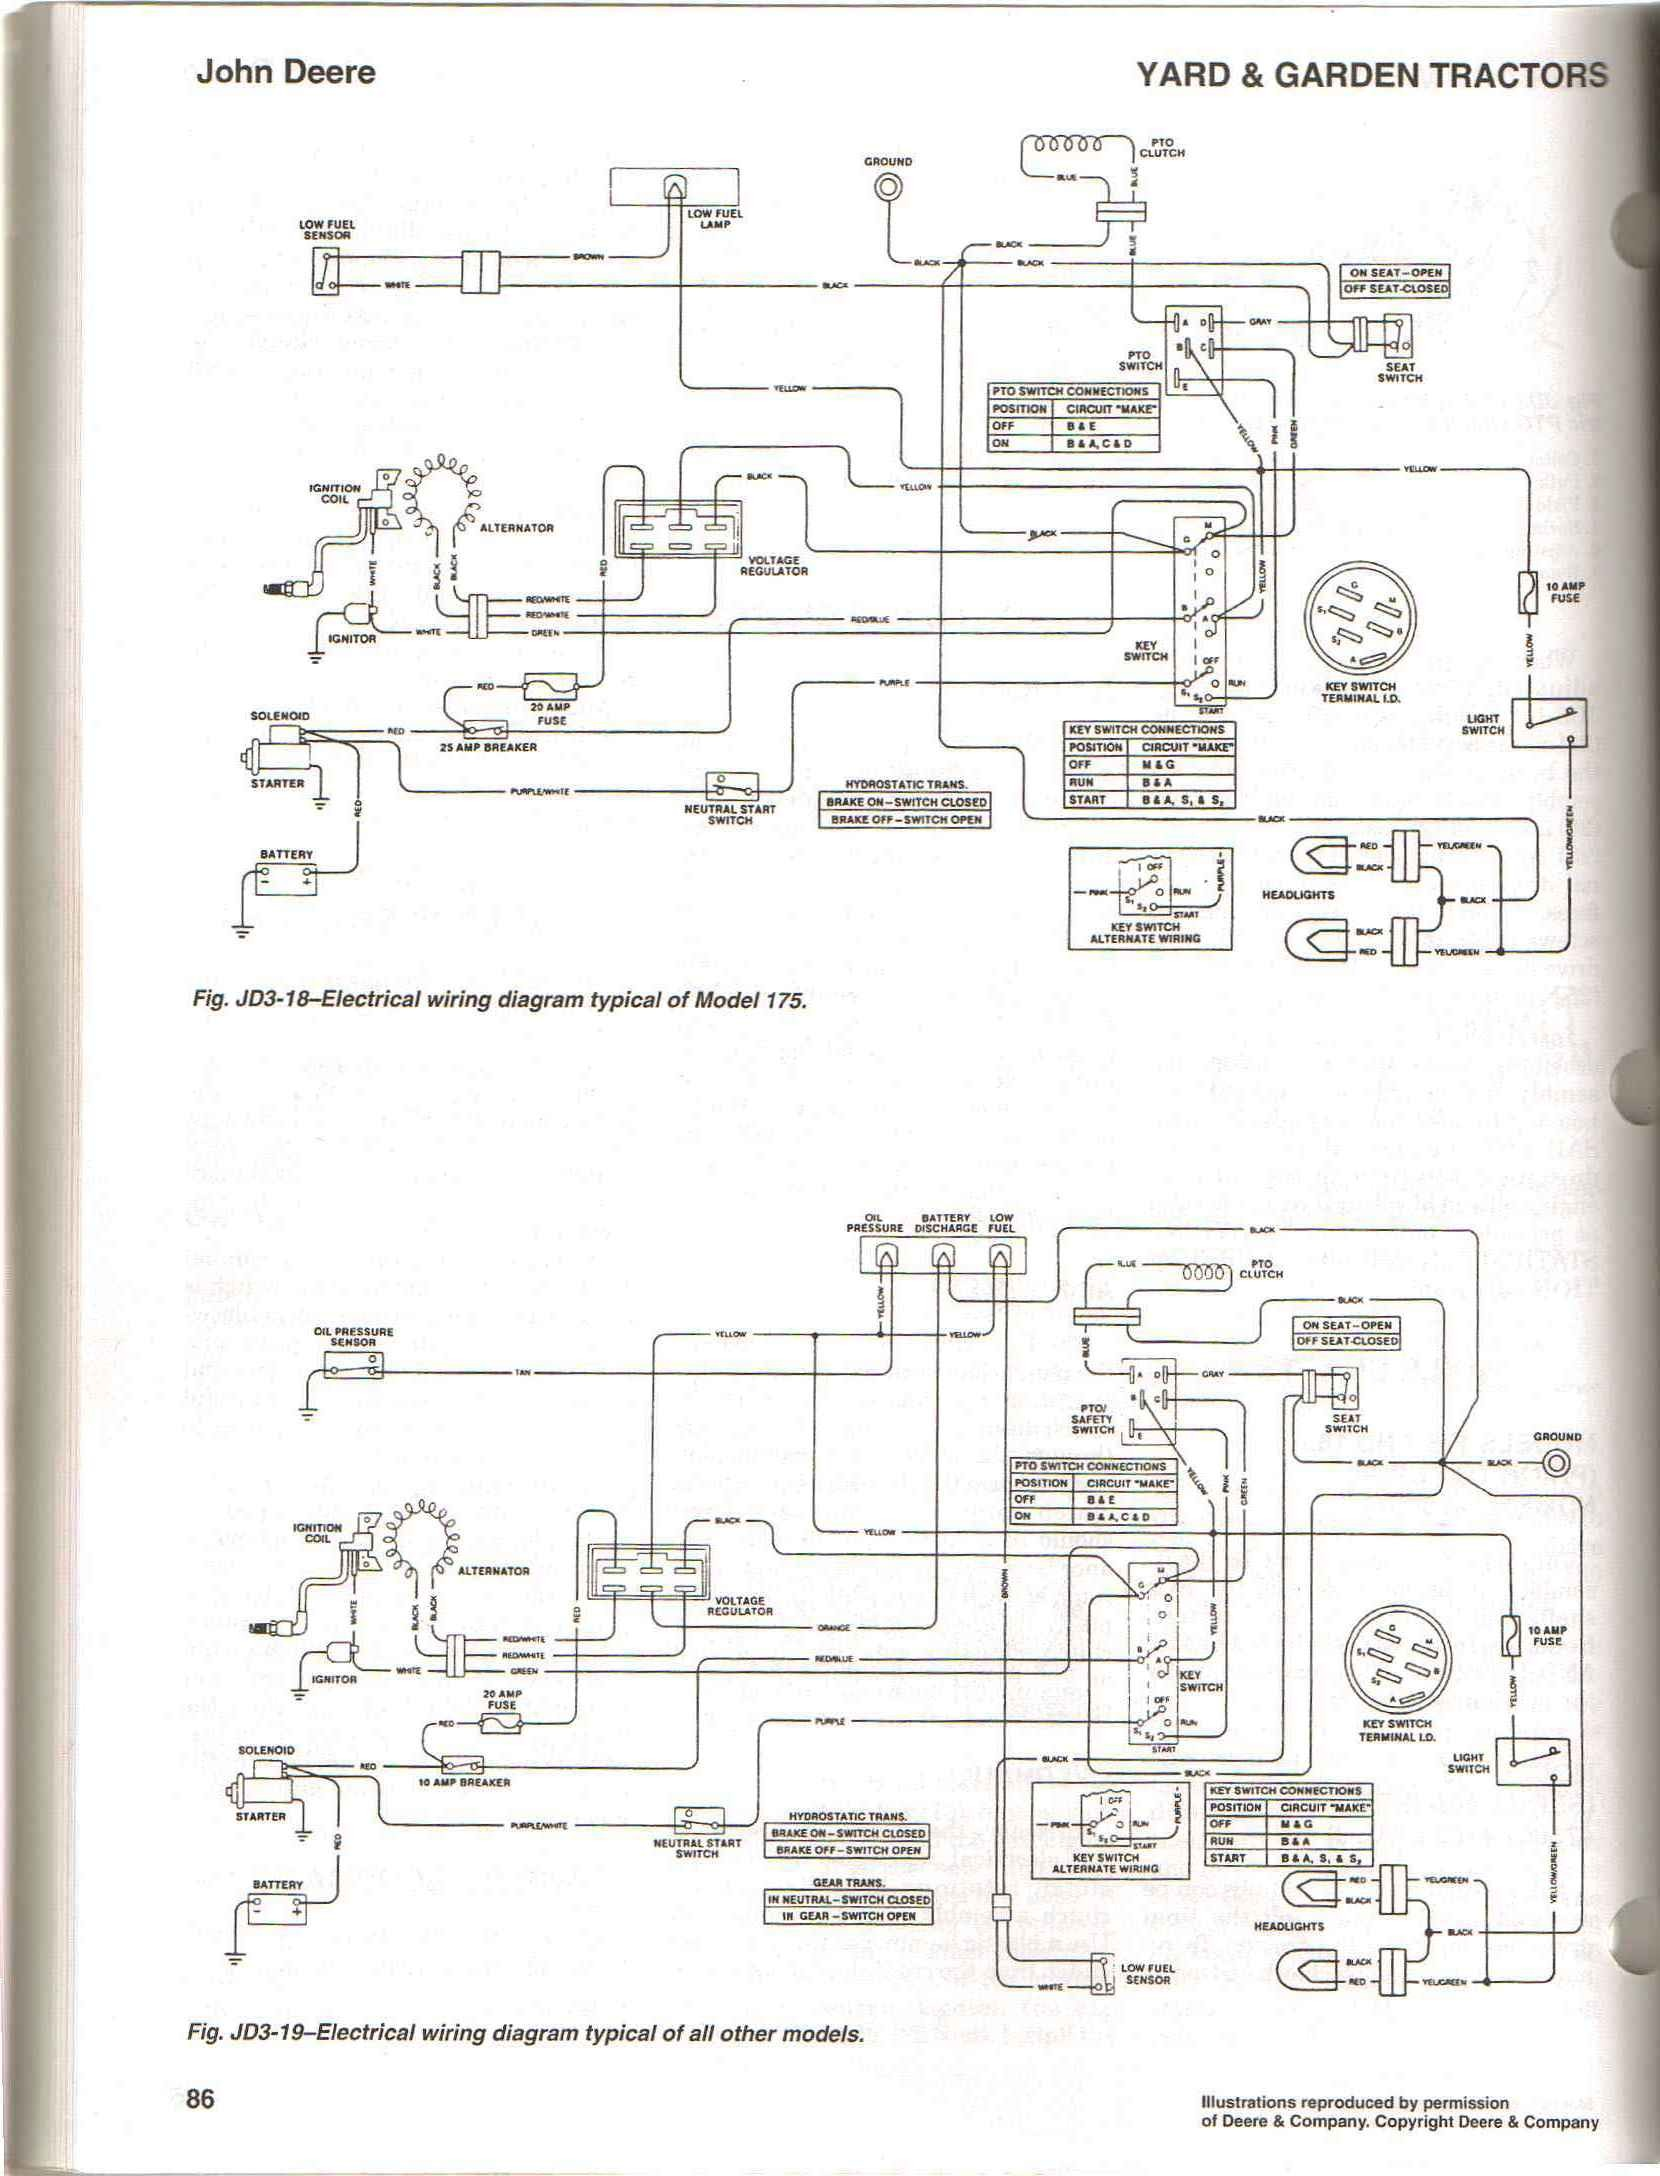 WRG-4232] Wiring Diagram For John Deere Gator 4x2 on john deere gator transmission diagram, john deere 4400 wiring harness diagram, john deere 425 wiring harness diagram, john deere 430 wiring harness diagram, john deere 4020 parts diagram, john deere gator fuel system diagram, john deere gator carburetor diagram, john deere 3020 wiring harness diagram, john deere gator shifter diagram, john deere gator thermostat diagram,